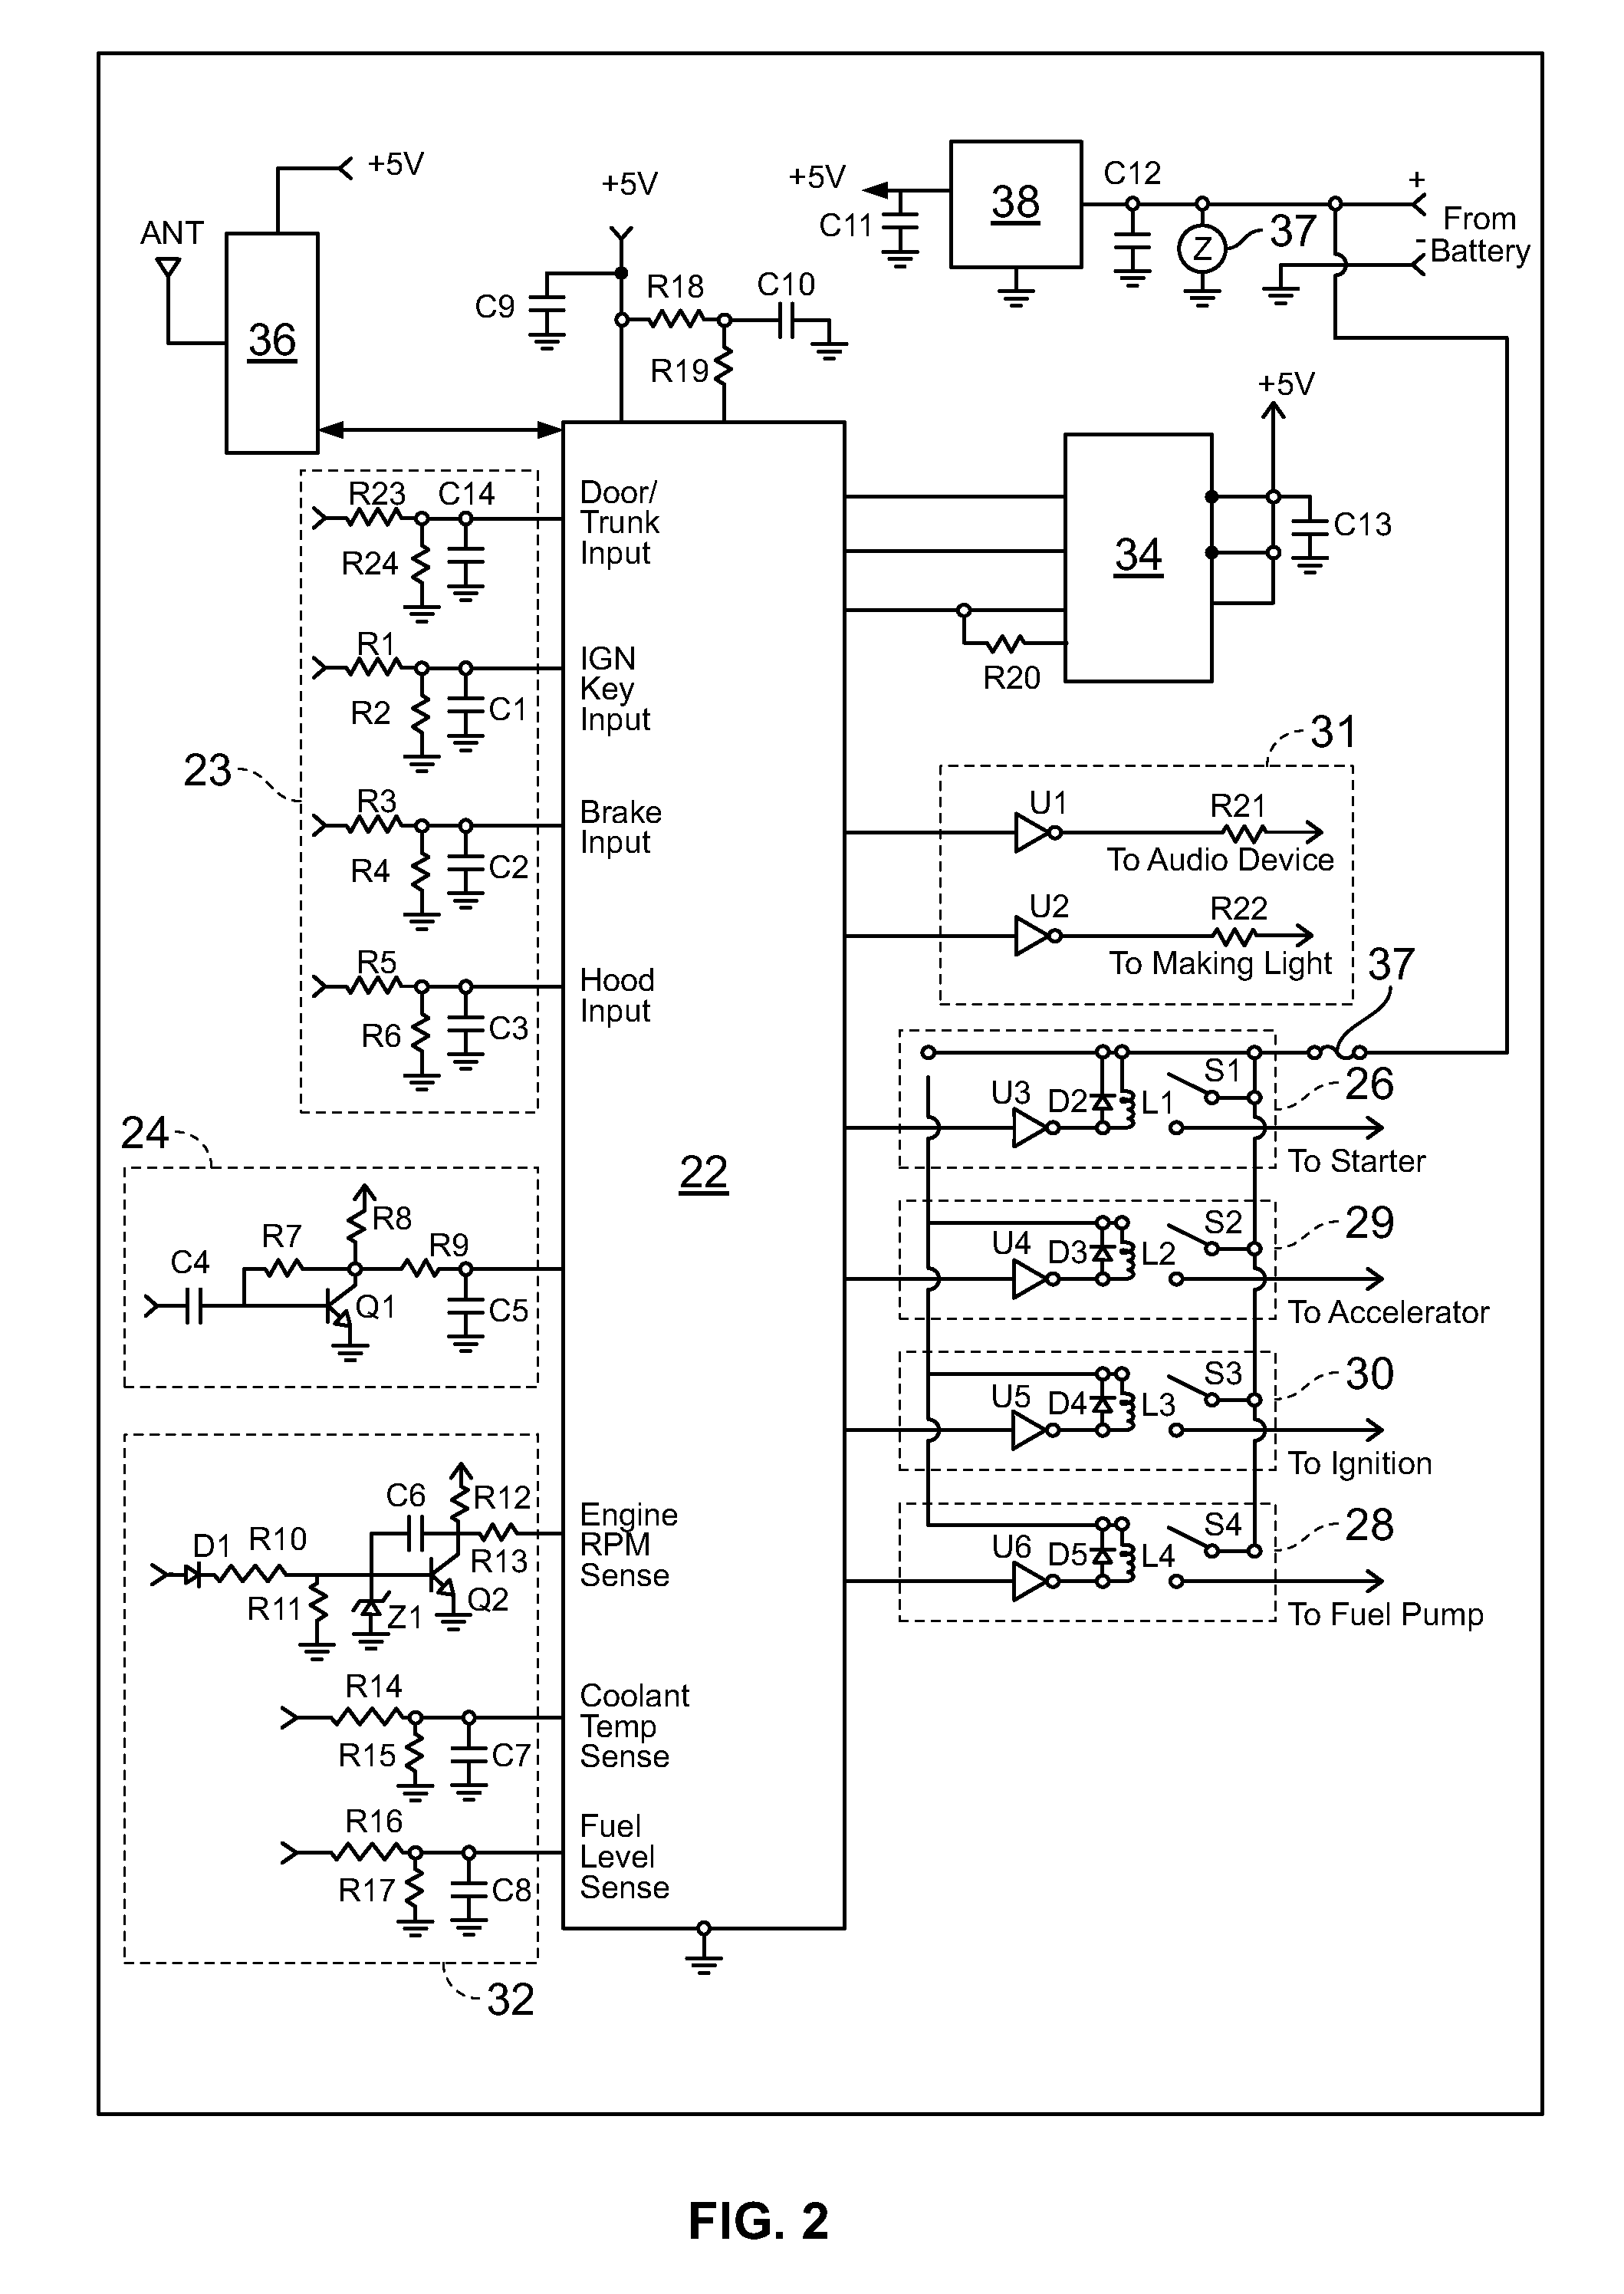 Ford Cargo 0811 Wiring Diagram Simple Wiring Schema